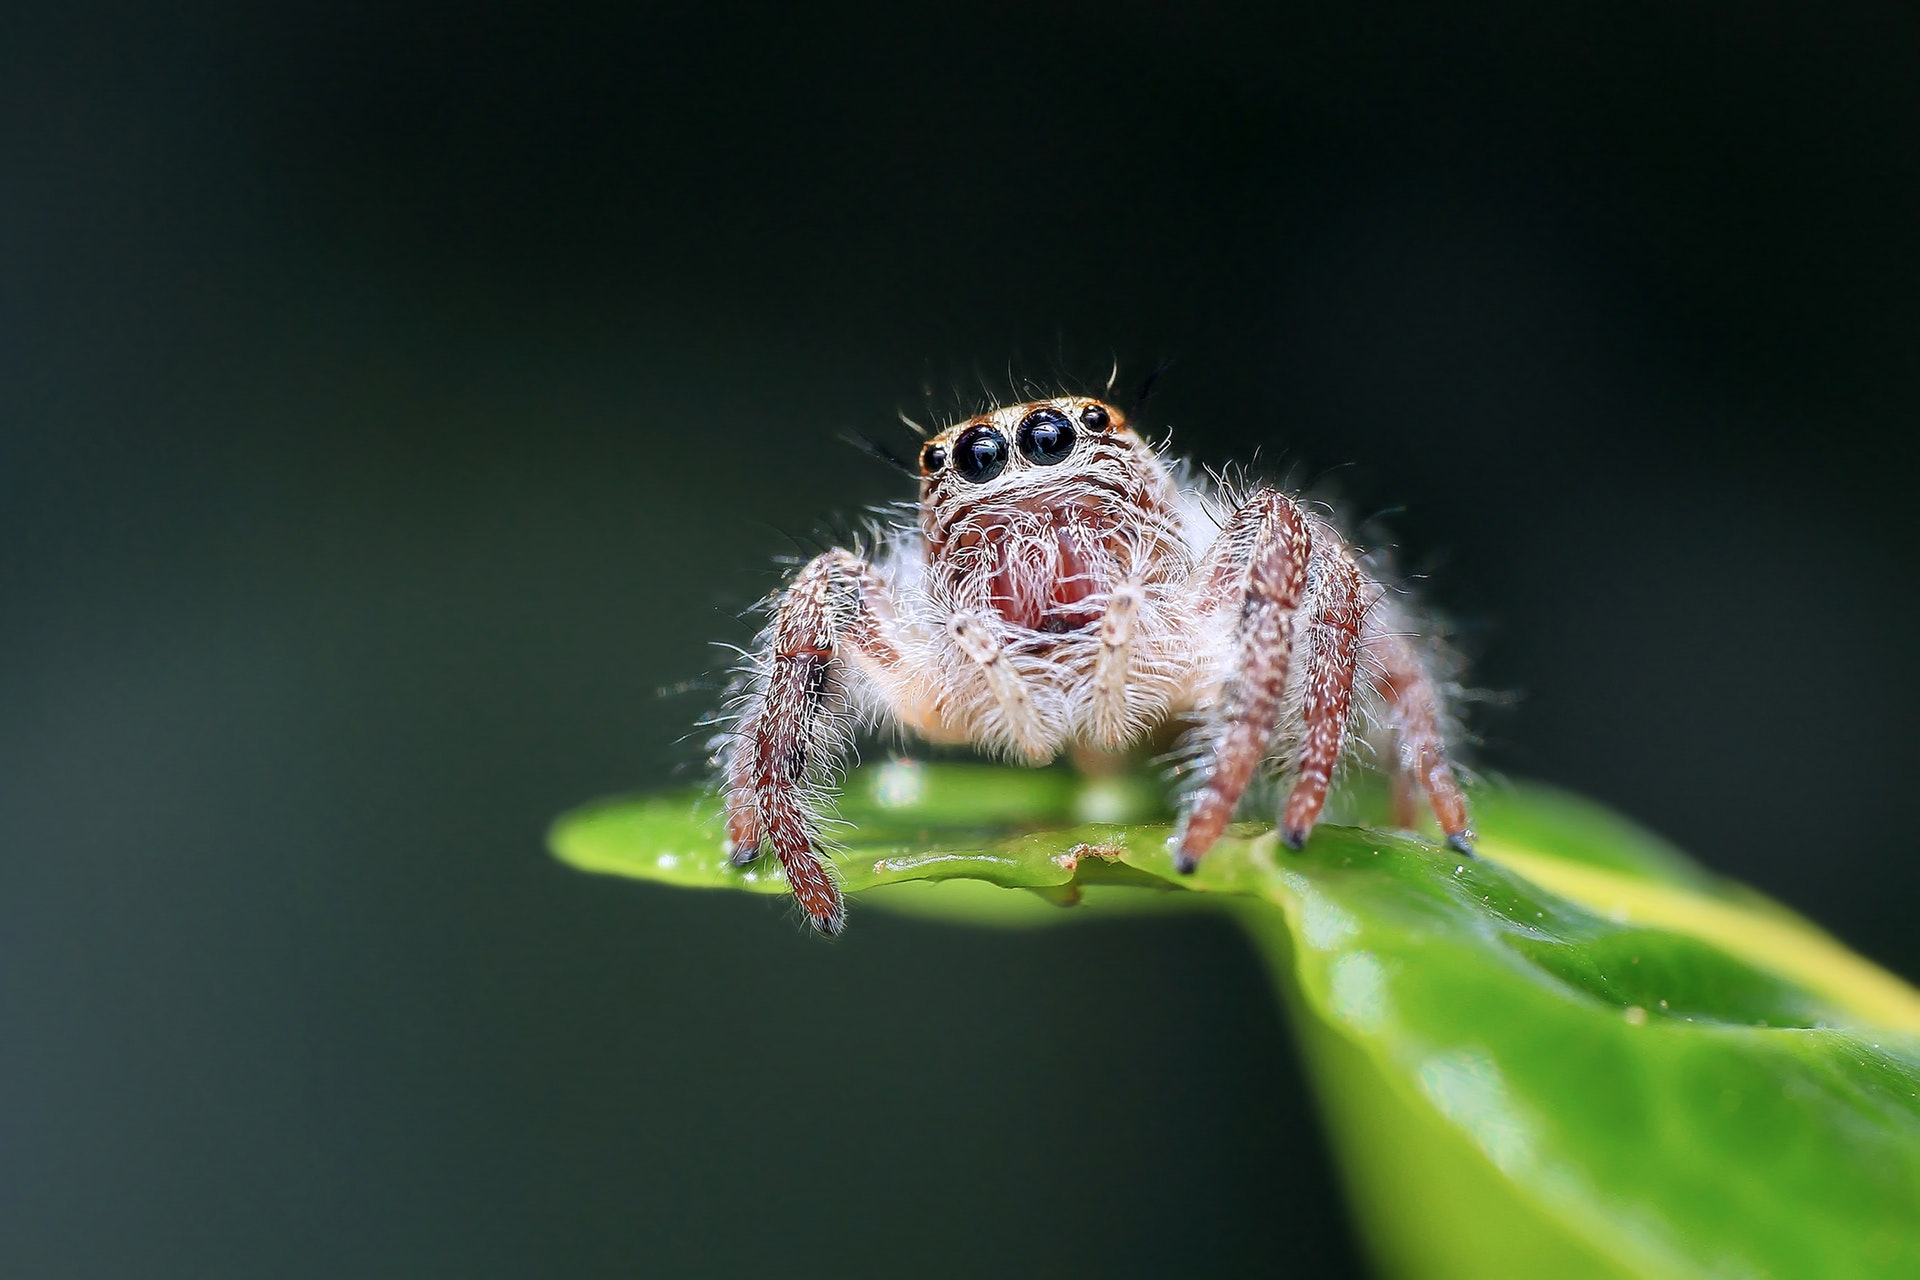 animal-arachnid-blur-257554